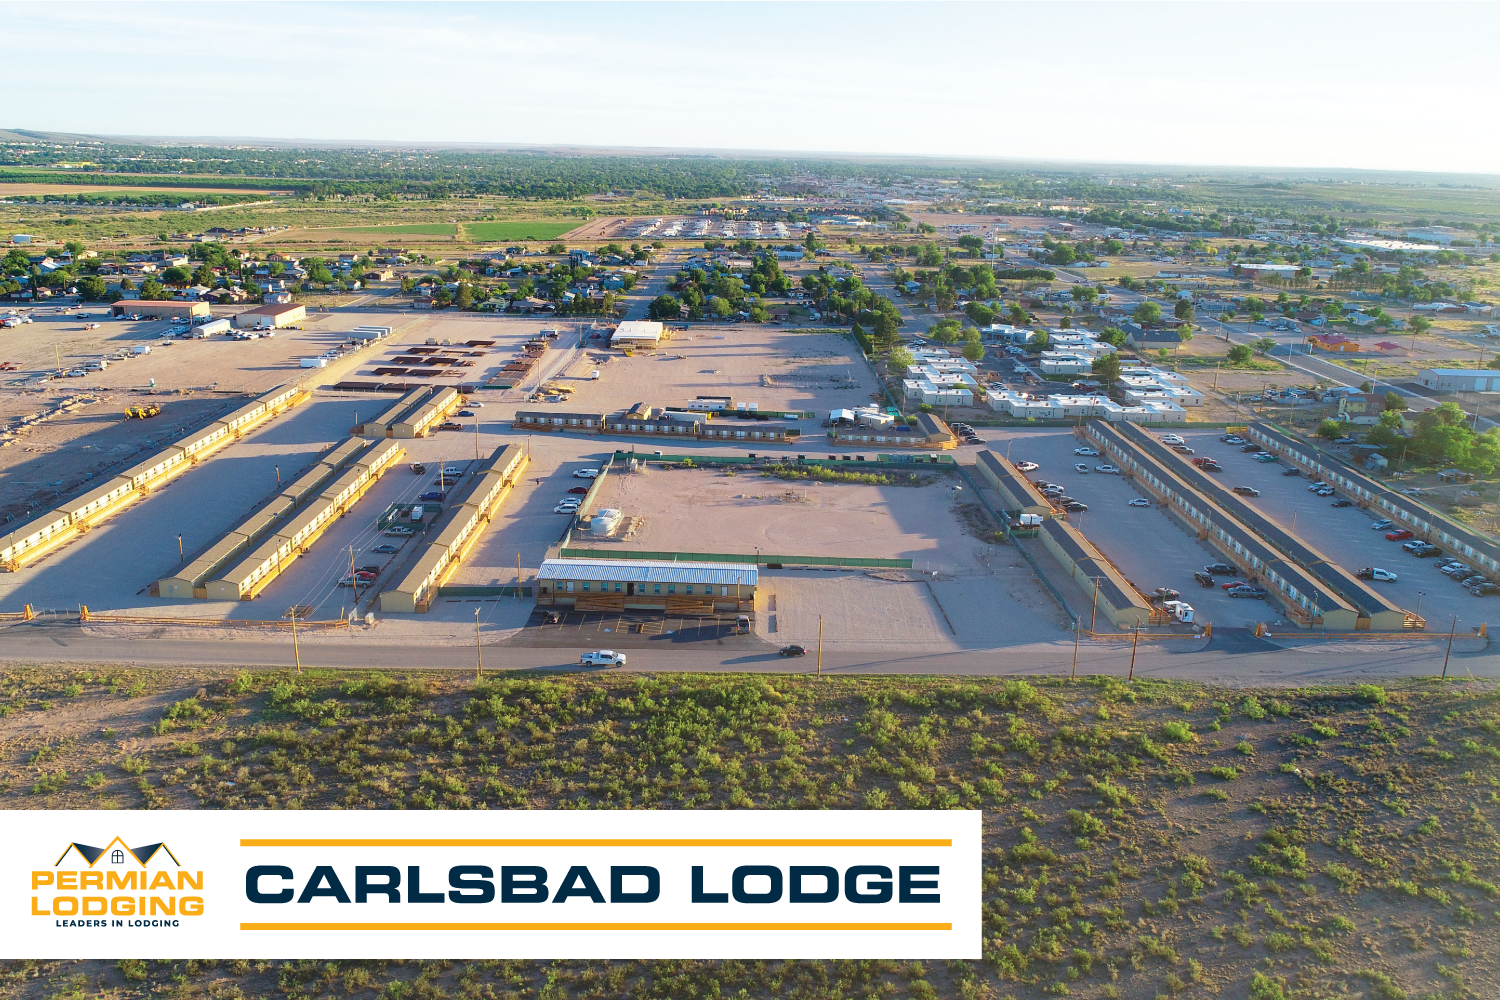 Carlsbad Lodge